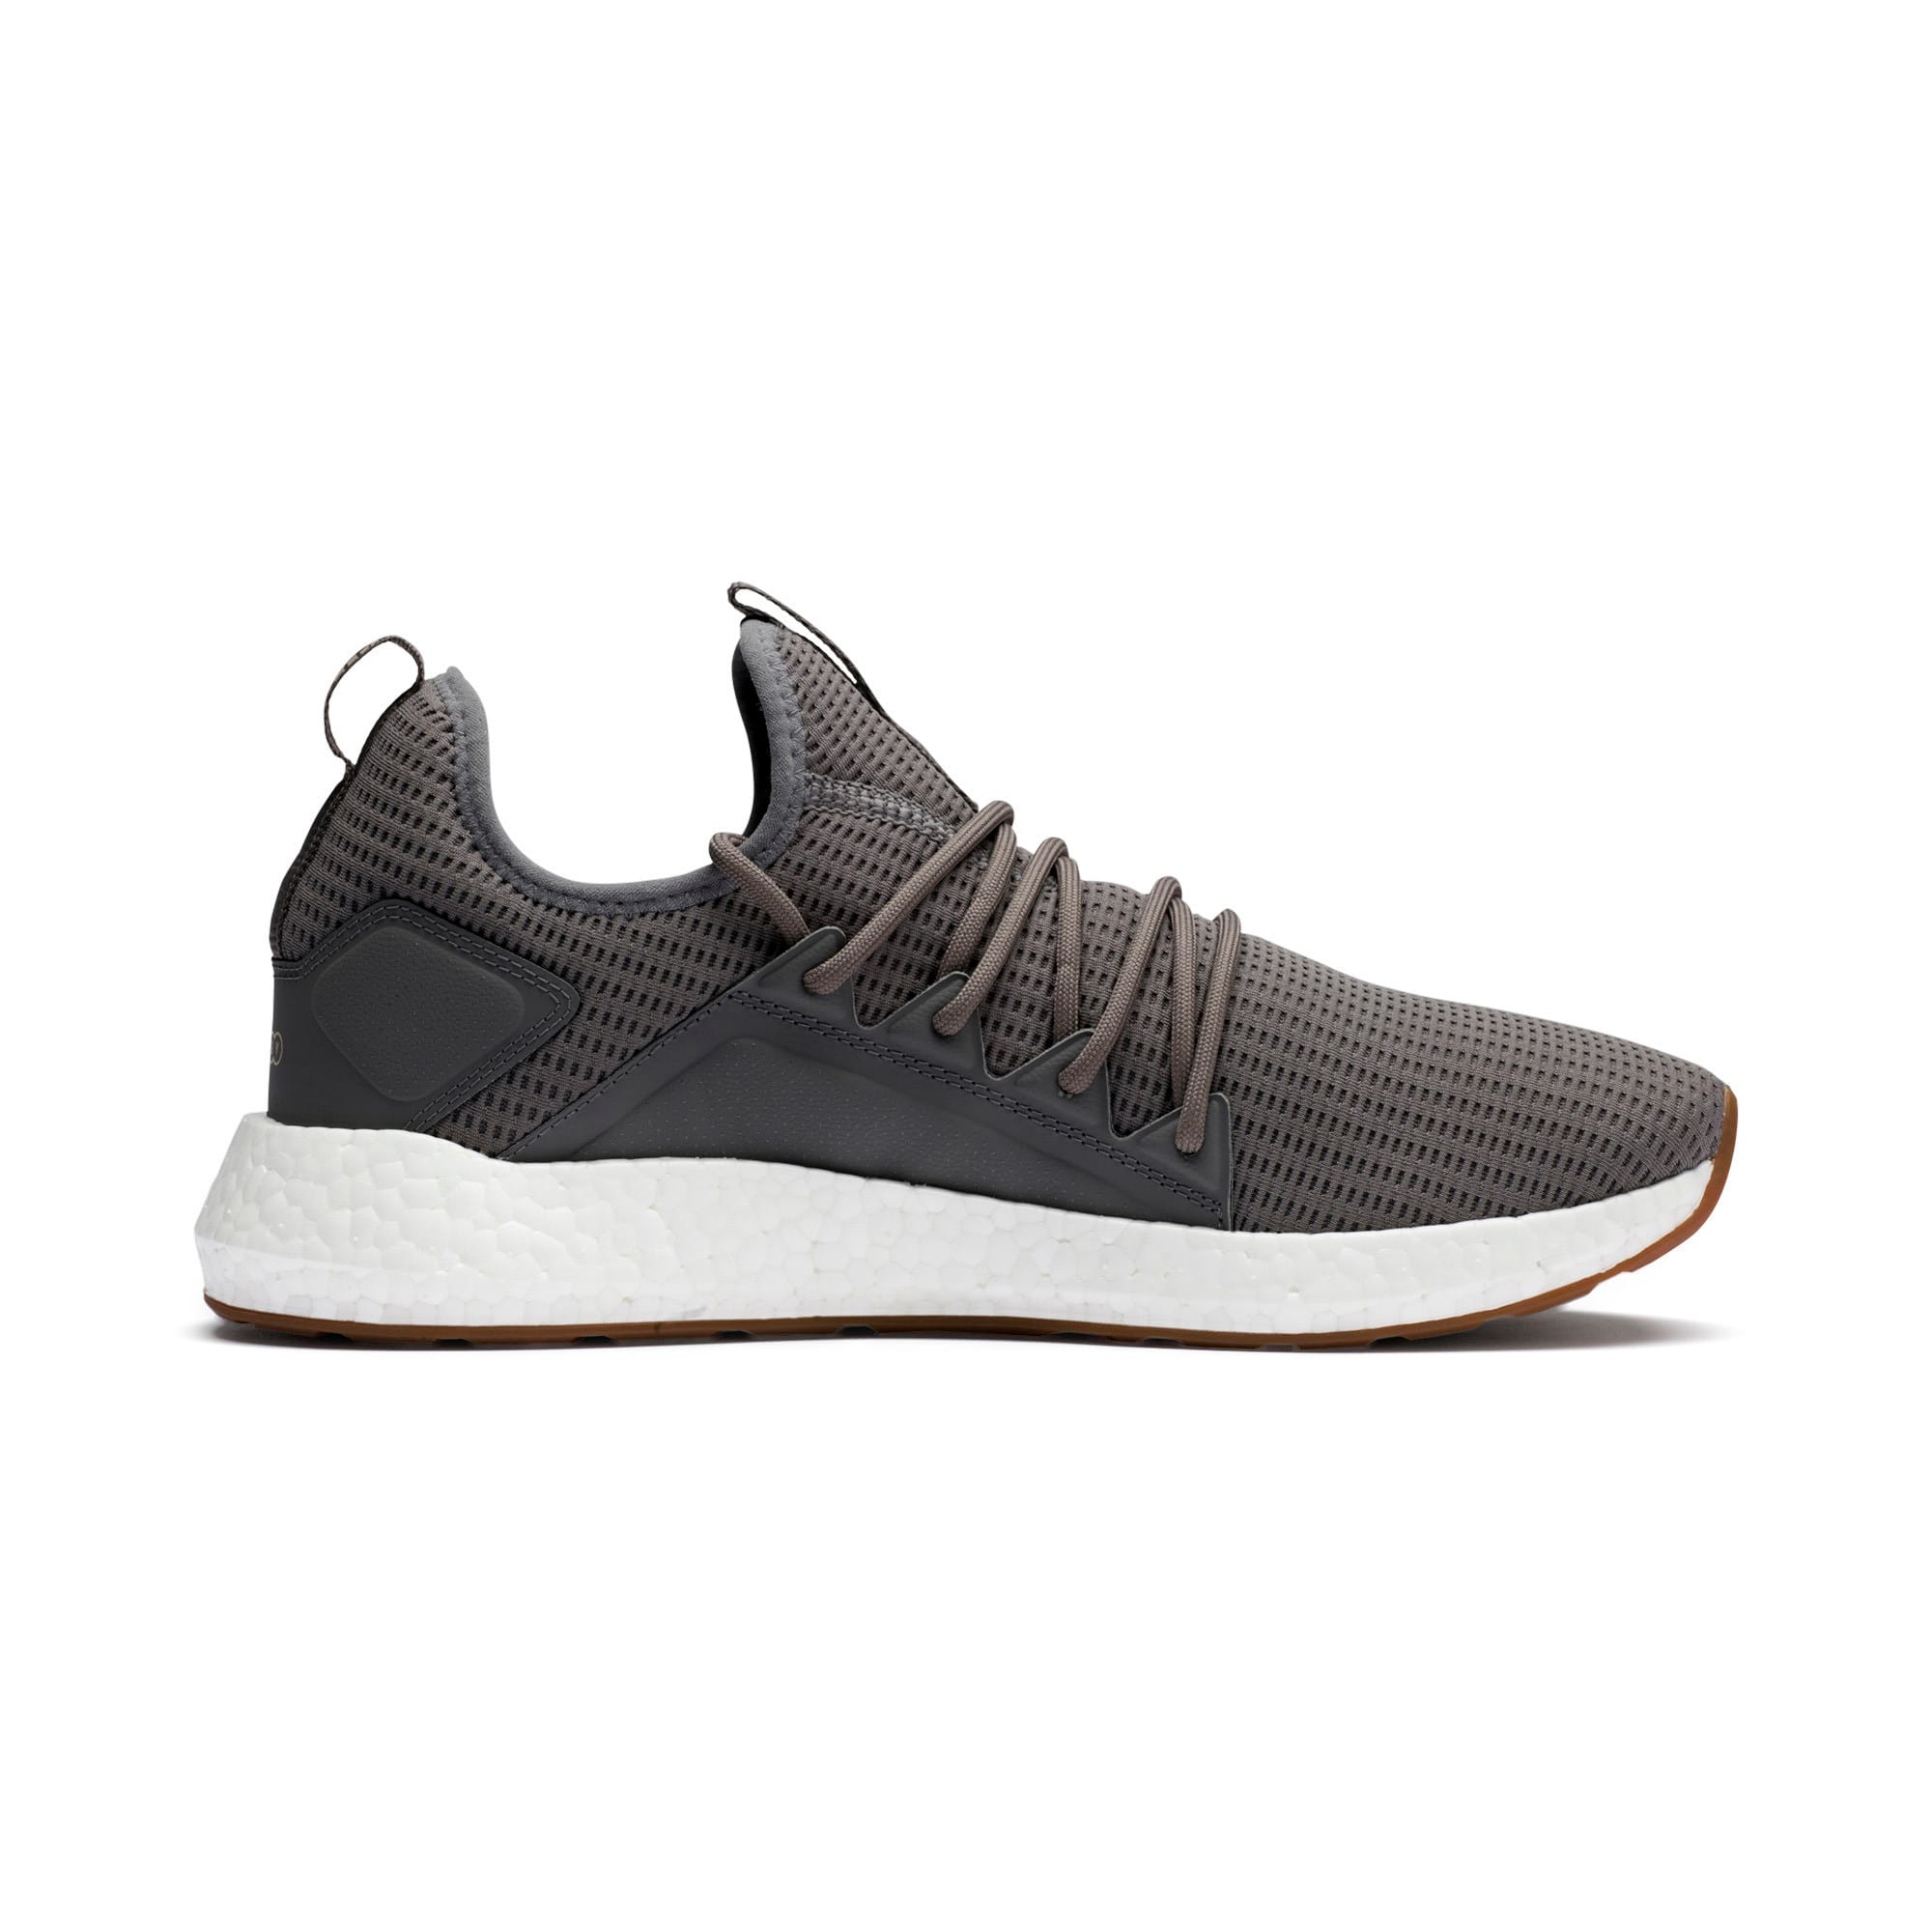 Thumbnail 5 of NRGY Neko Future Men's Trainers, Charcoal Gray-Taos Taupe, medium-IND